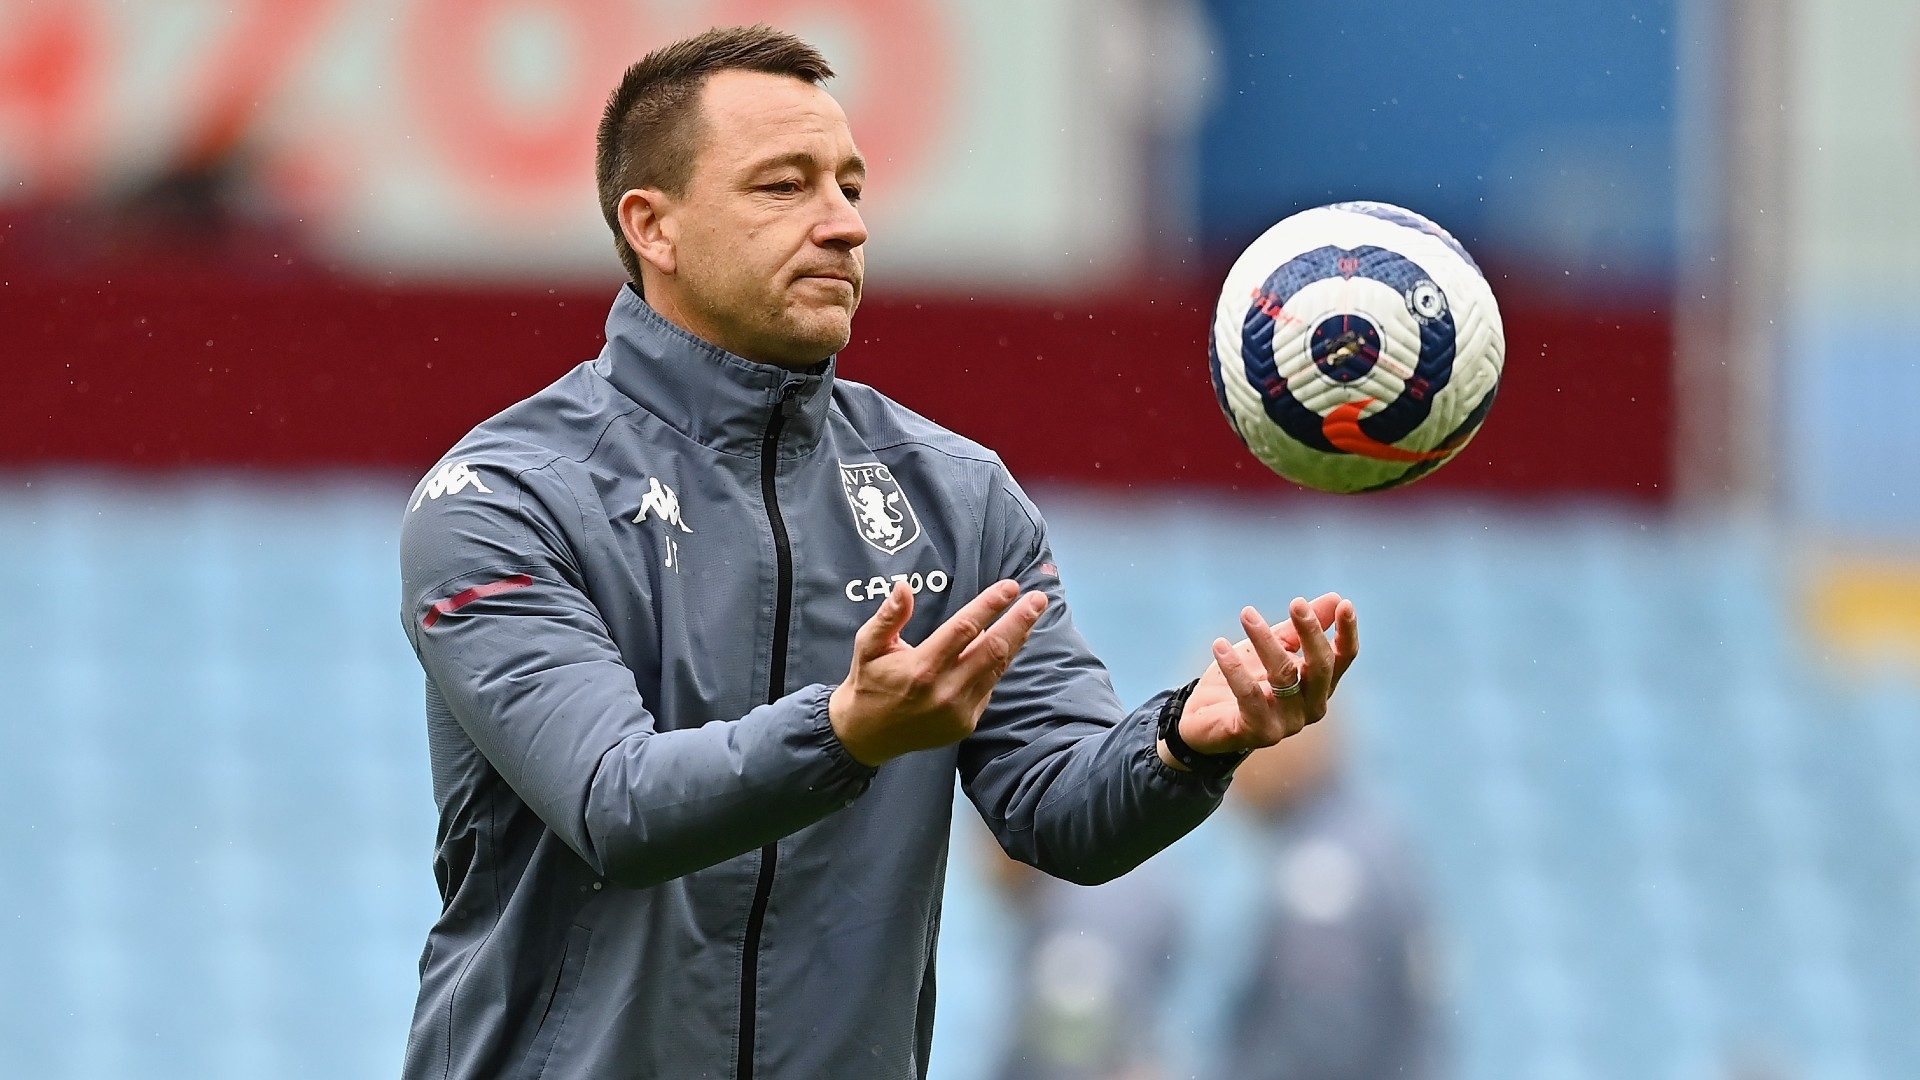 Ex-Chelsea and England defender Terry steps down from Aston Villa assistant manager role